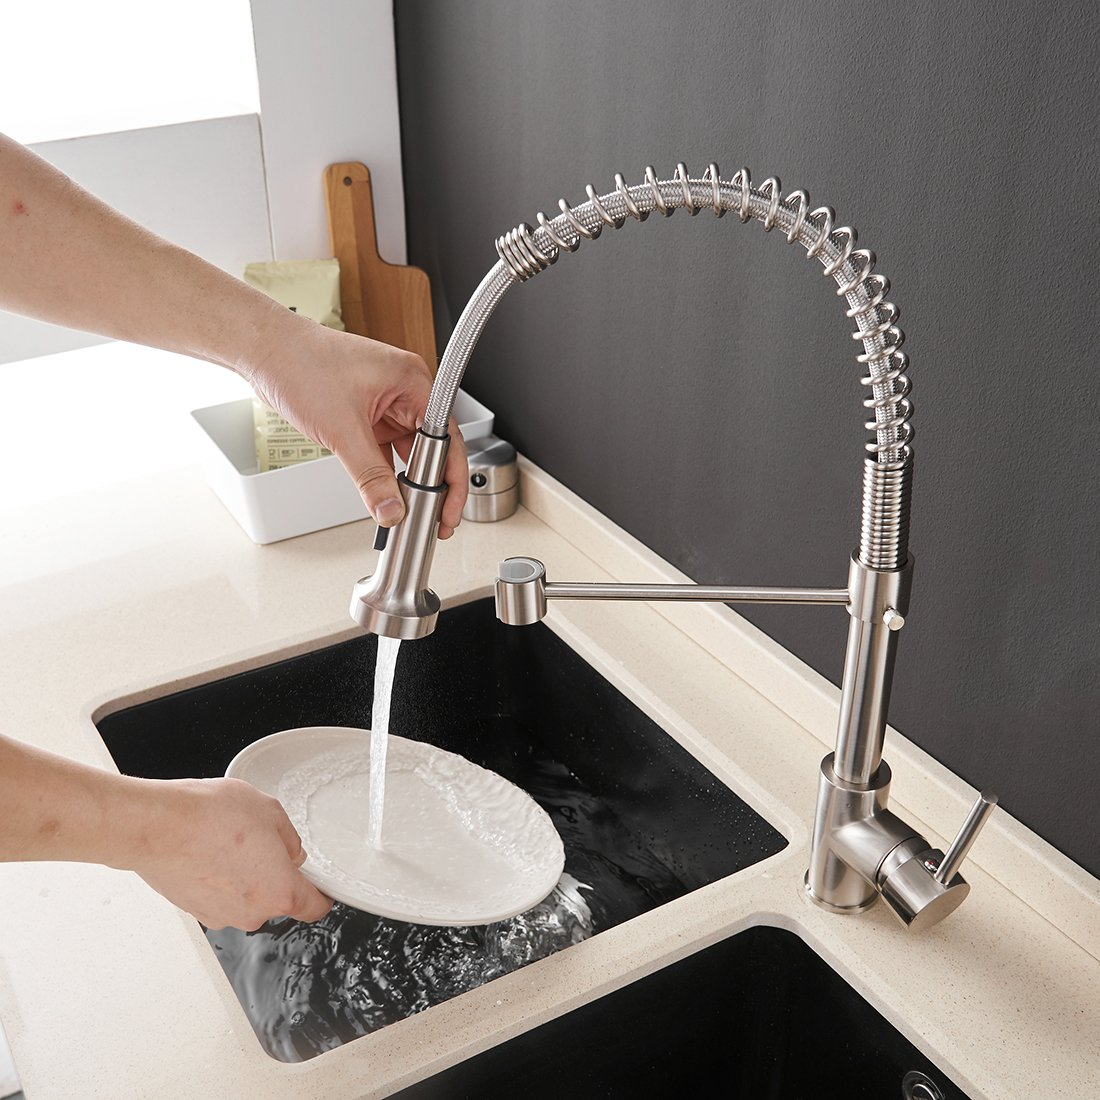 OWOFAN Lead-Free Commercial Solid Brass Single Handle Single Lever Pull Out Pull Down Sprayer Spring Kitchen Sink Faucet, Brushed Nickel Kitchen Faucets by OWOFAN (Image #3)